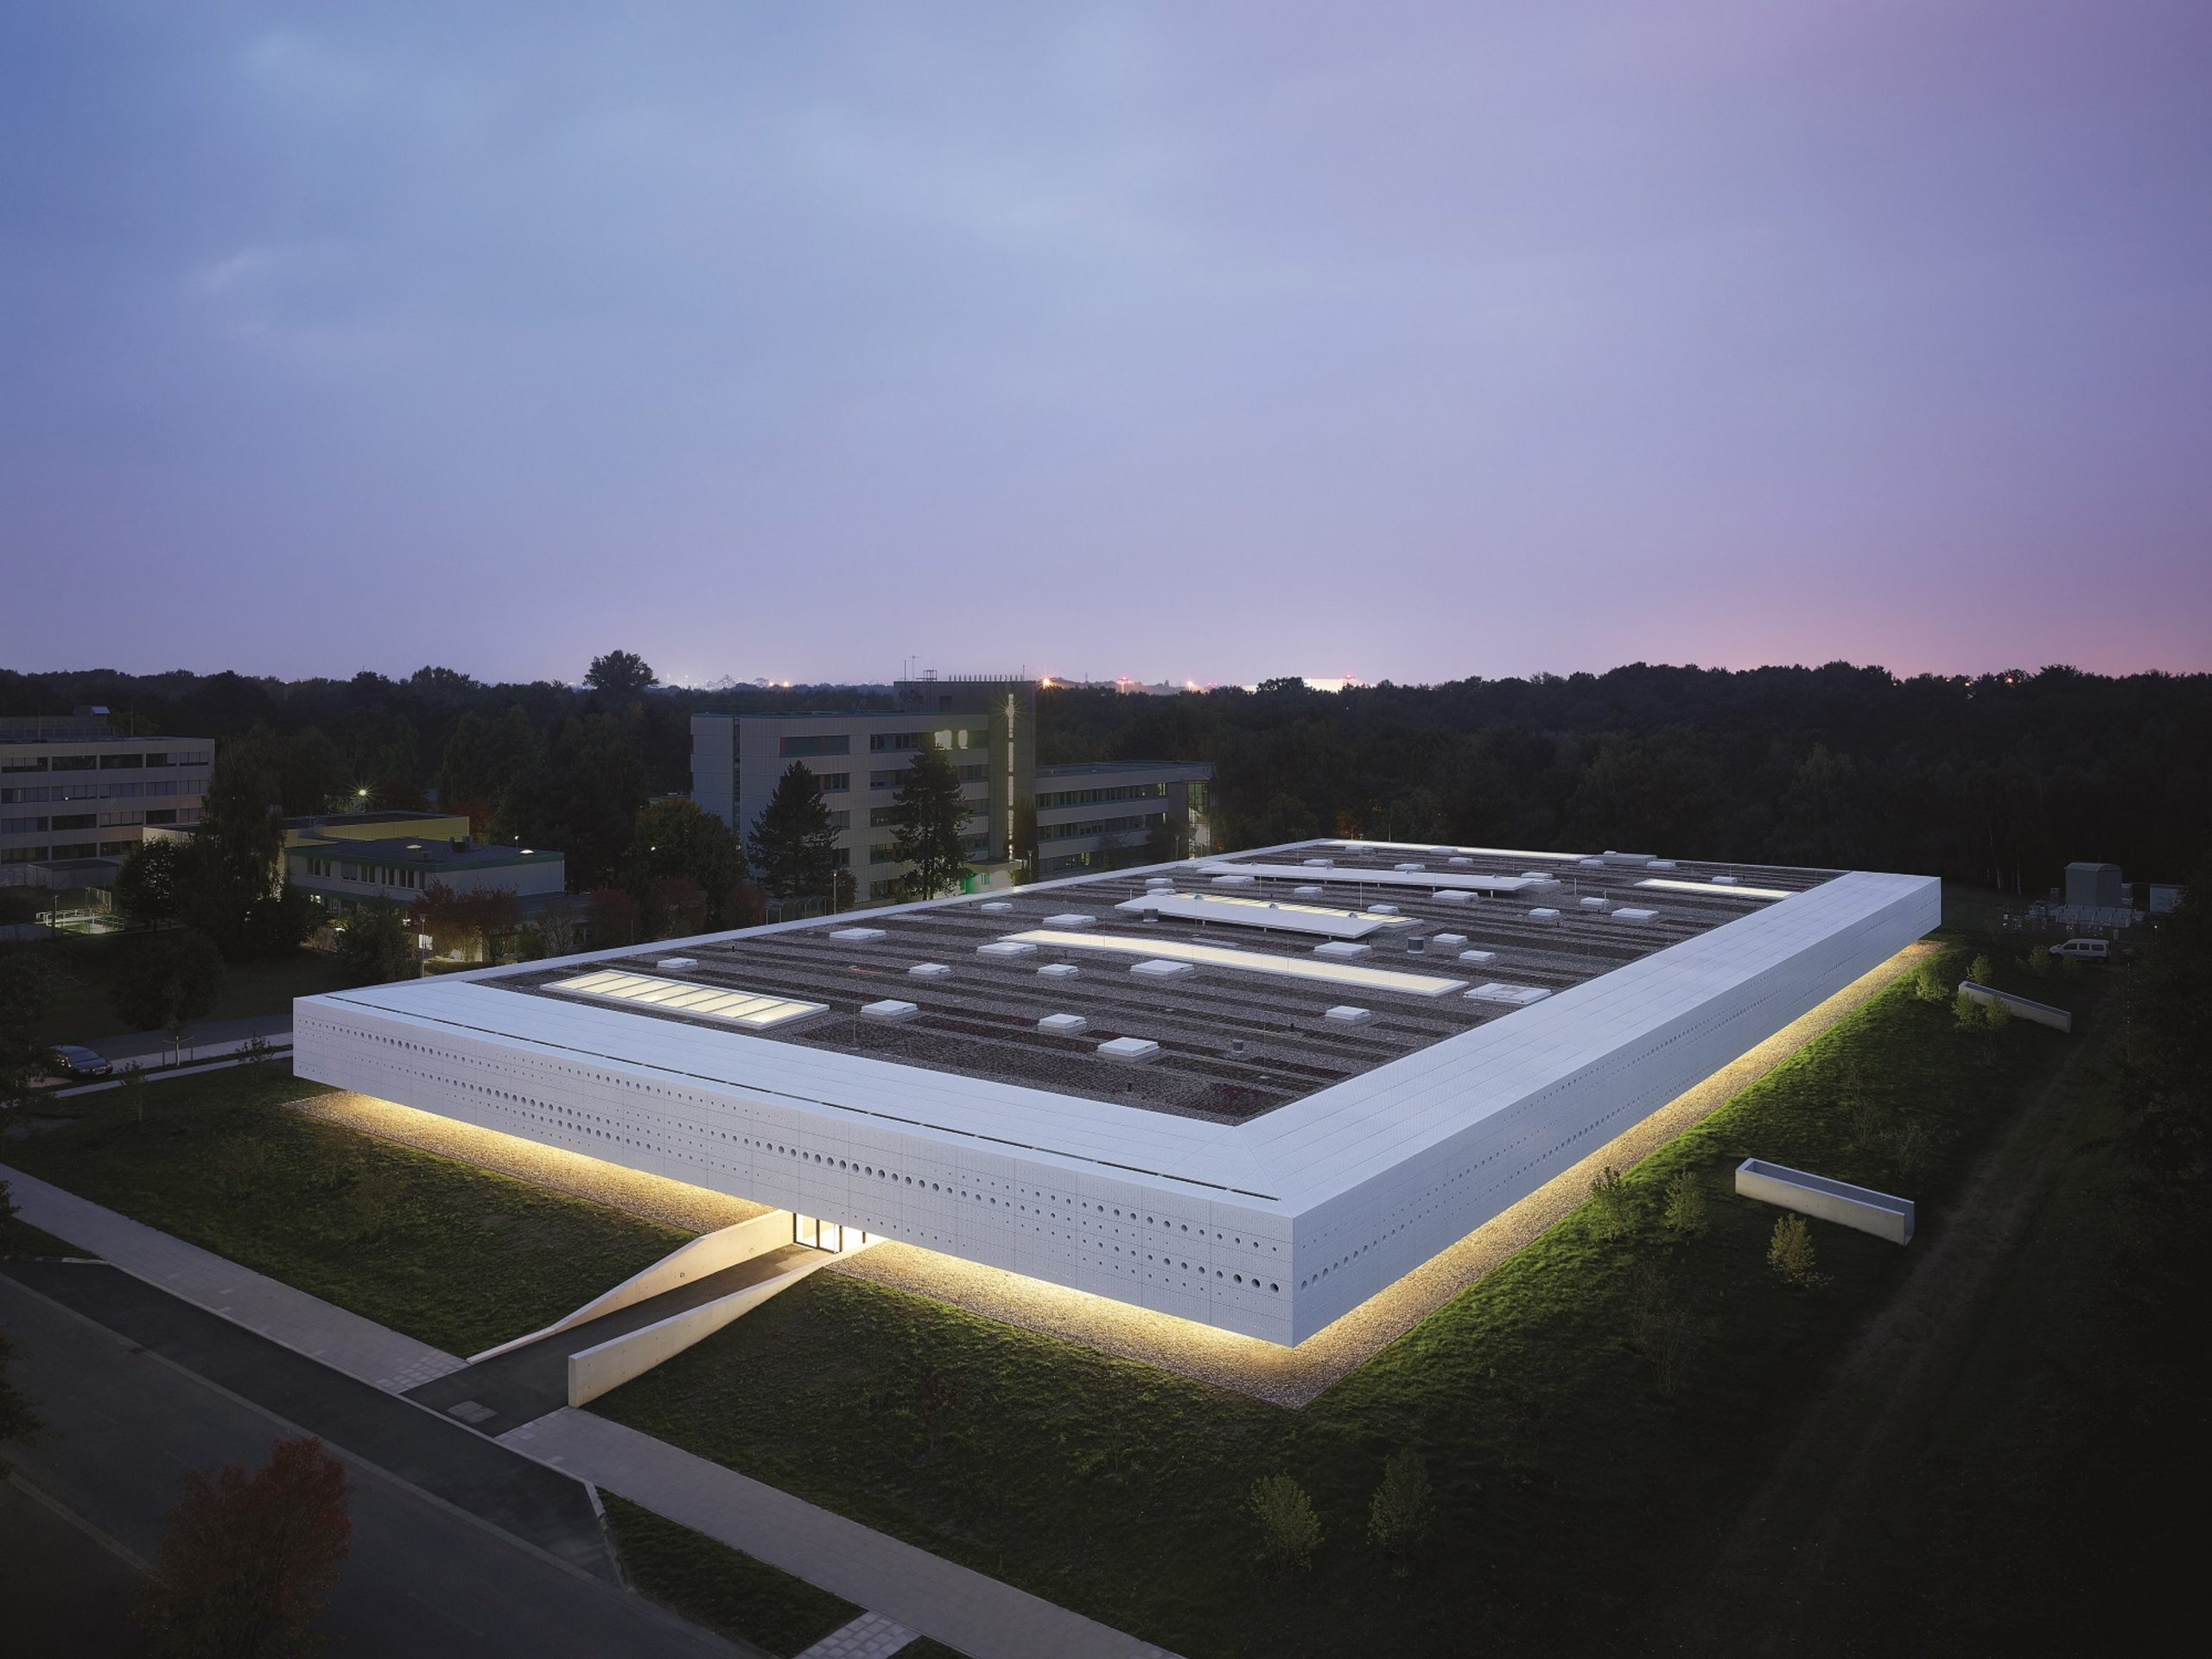 SIGNIFICANT ENERGY SAVINGS FOR DATA CENTRES WITH THE LATEST IN LED LIGHTING